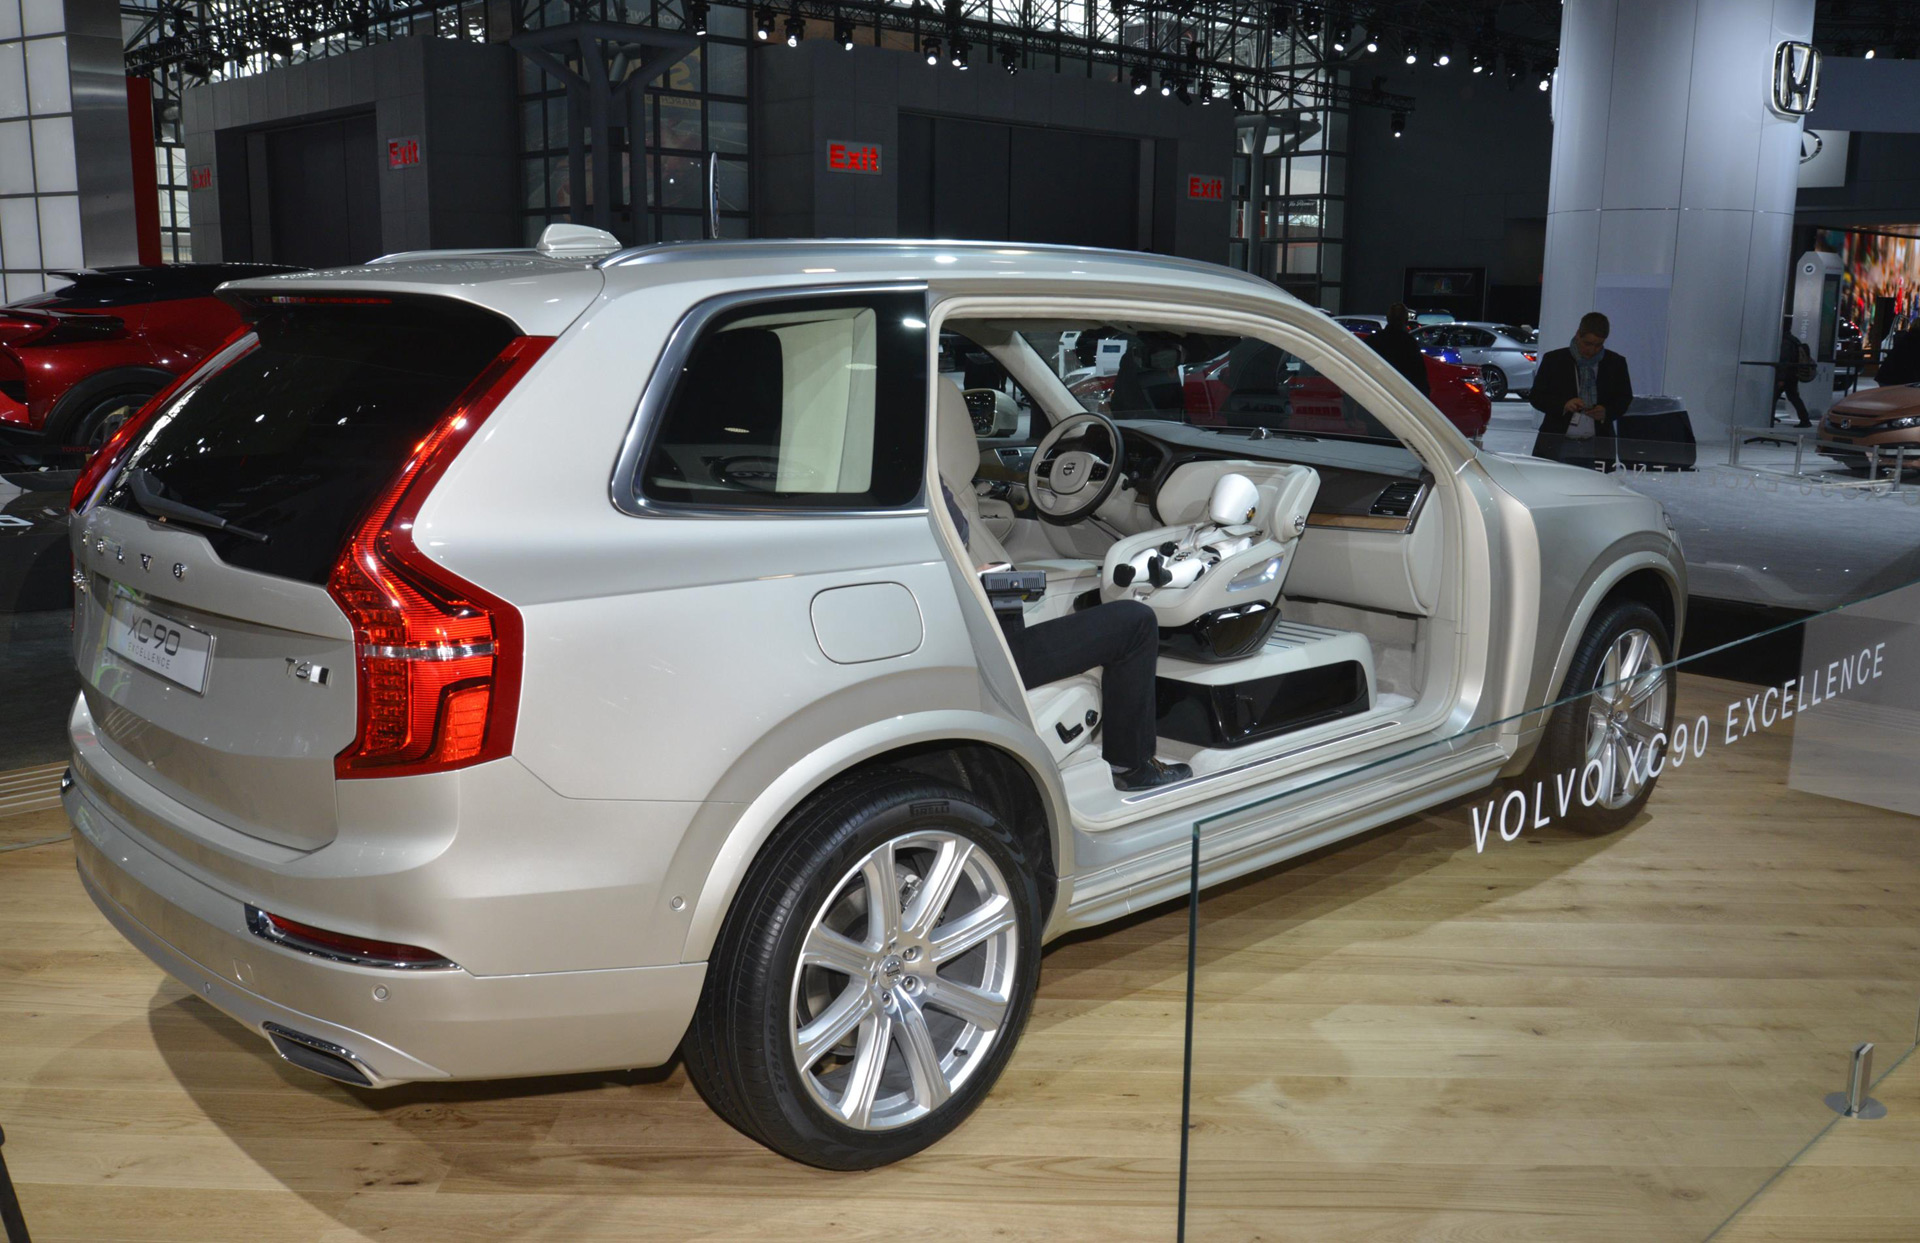 volvo suv plus twin in malaysia prices my carbase inscription engine specs reviews